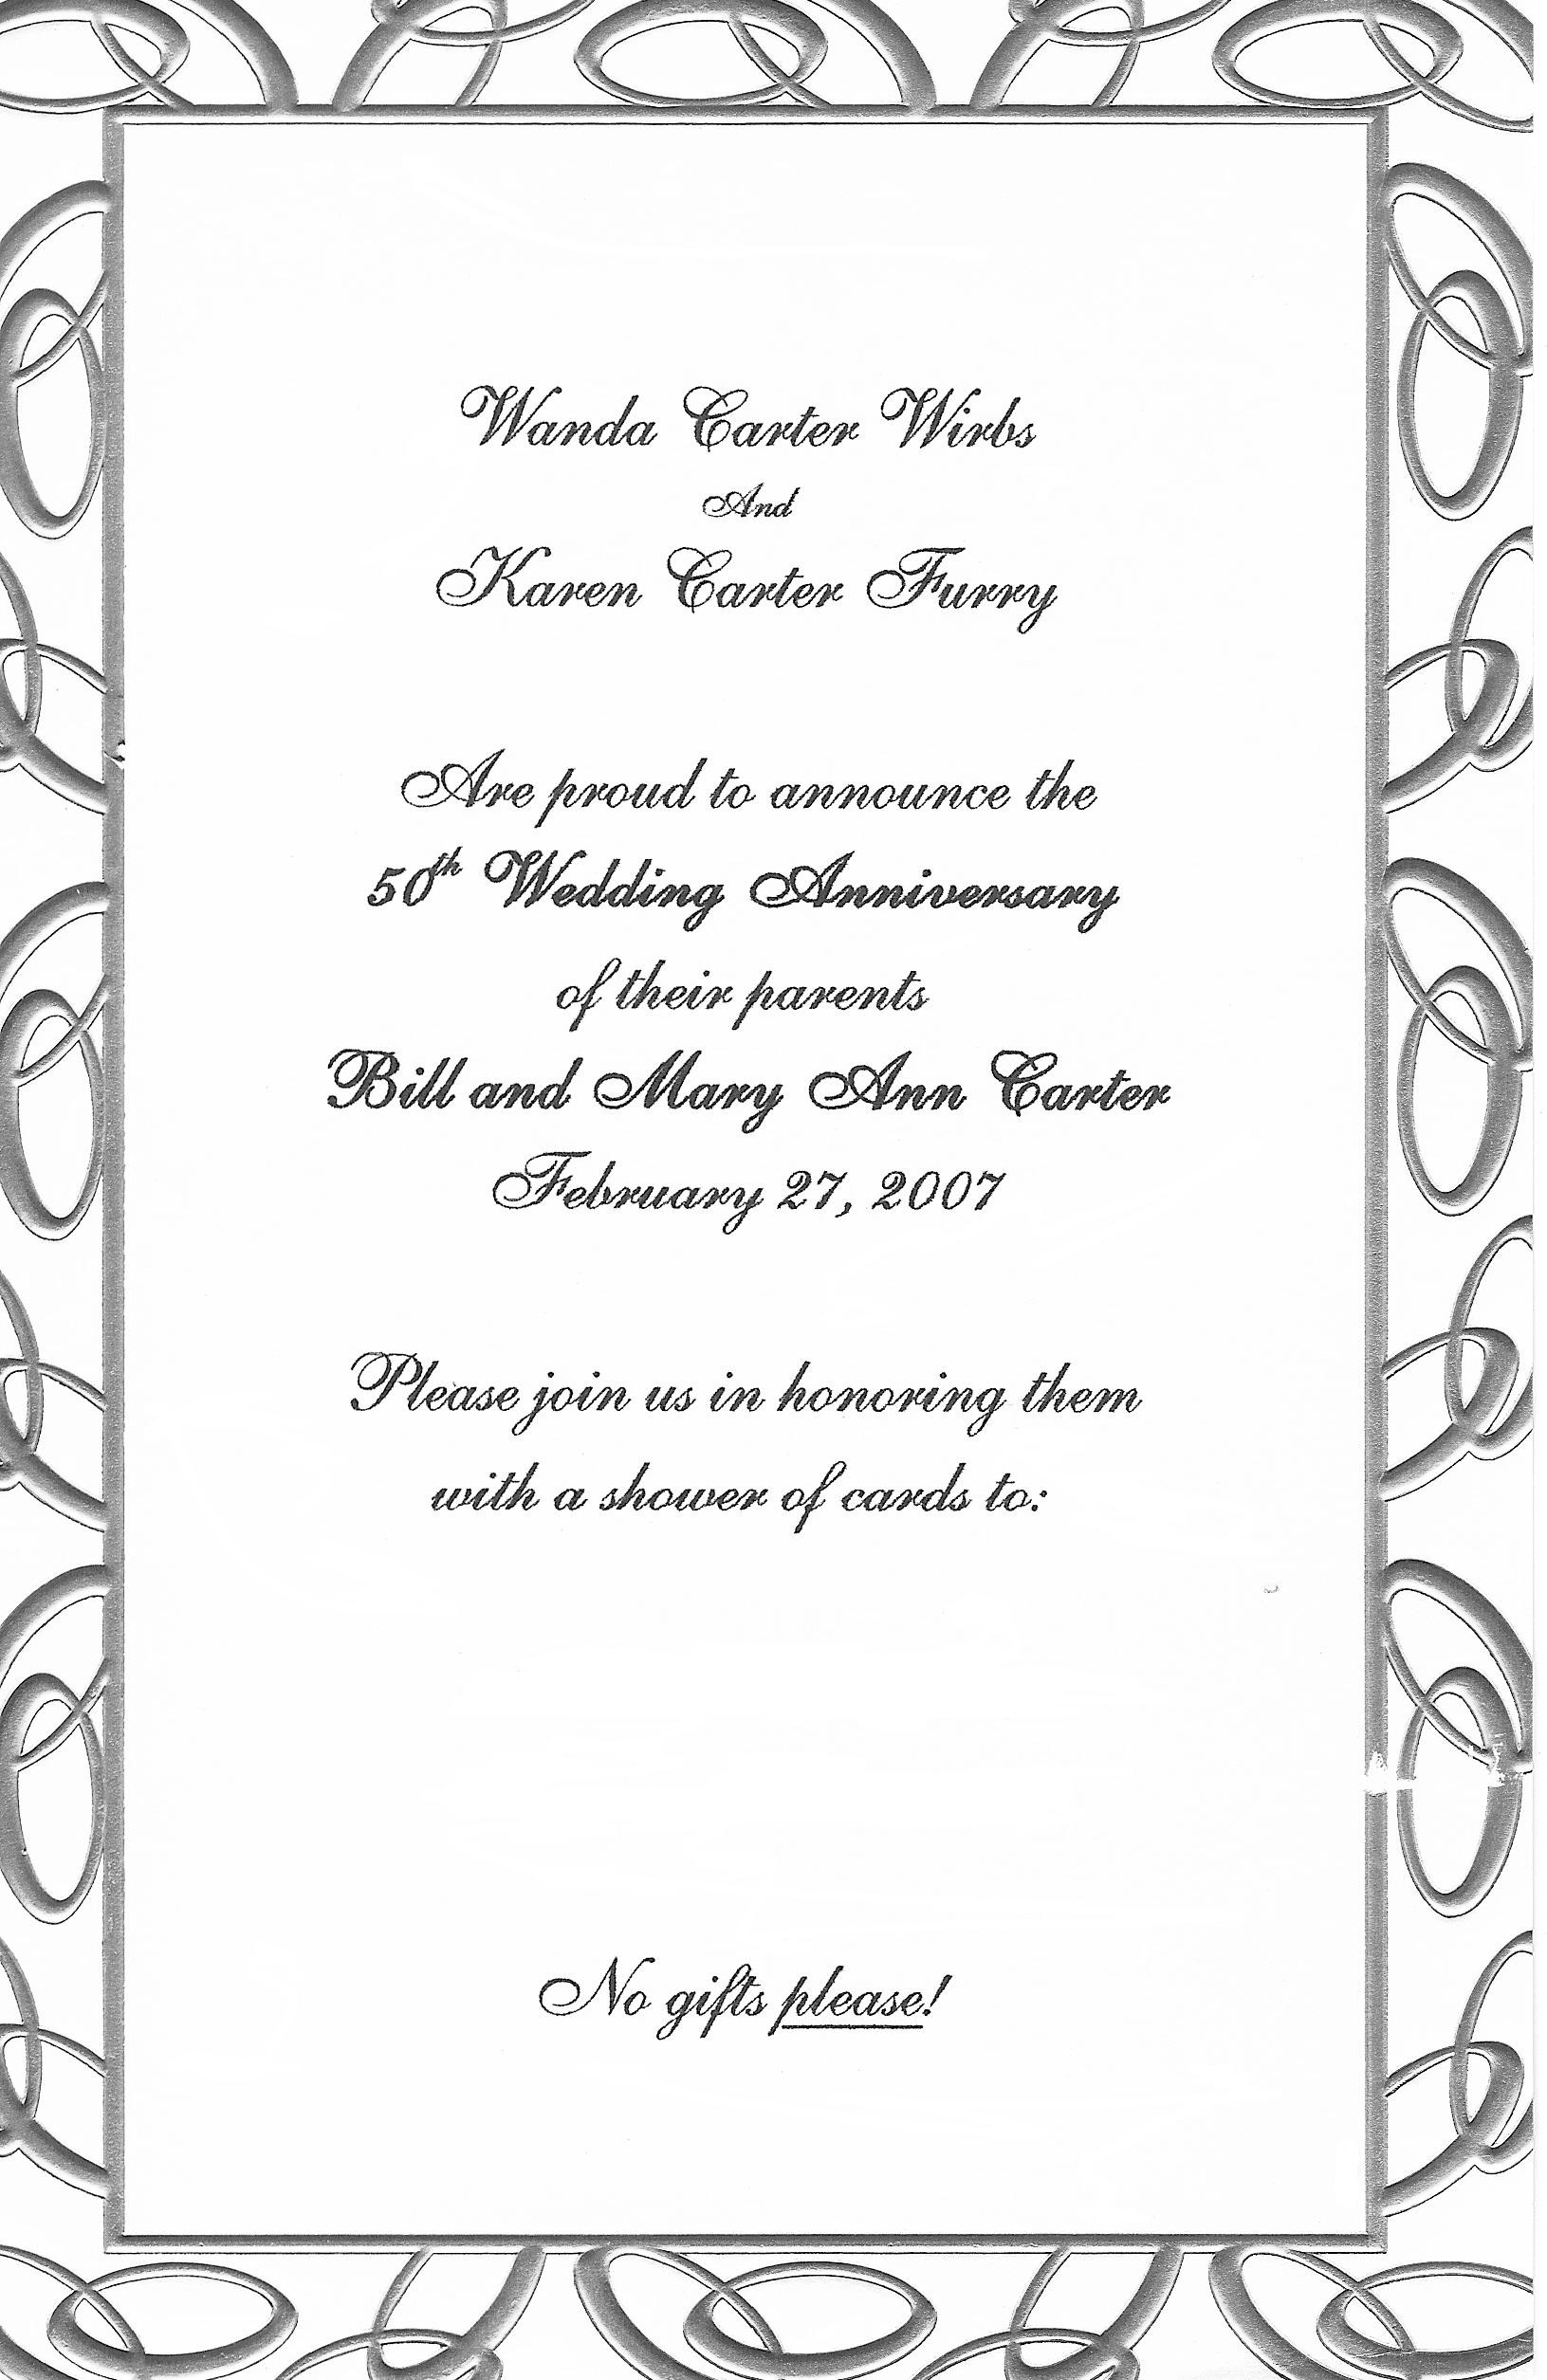 Anniversary clipart wedding shower. Invitation cliparts free download